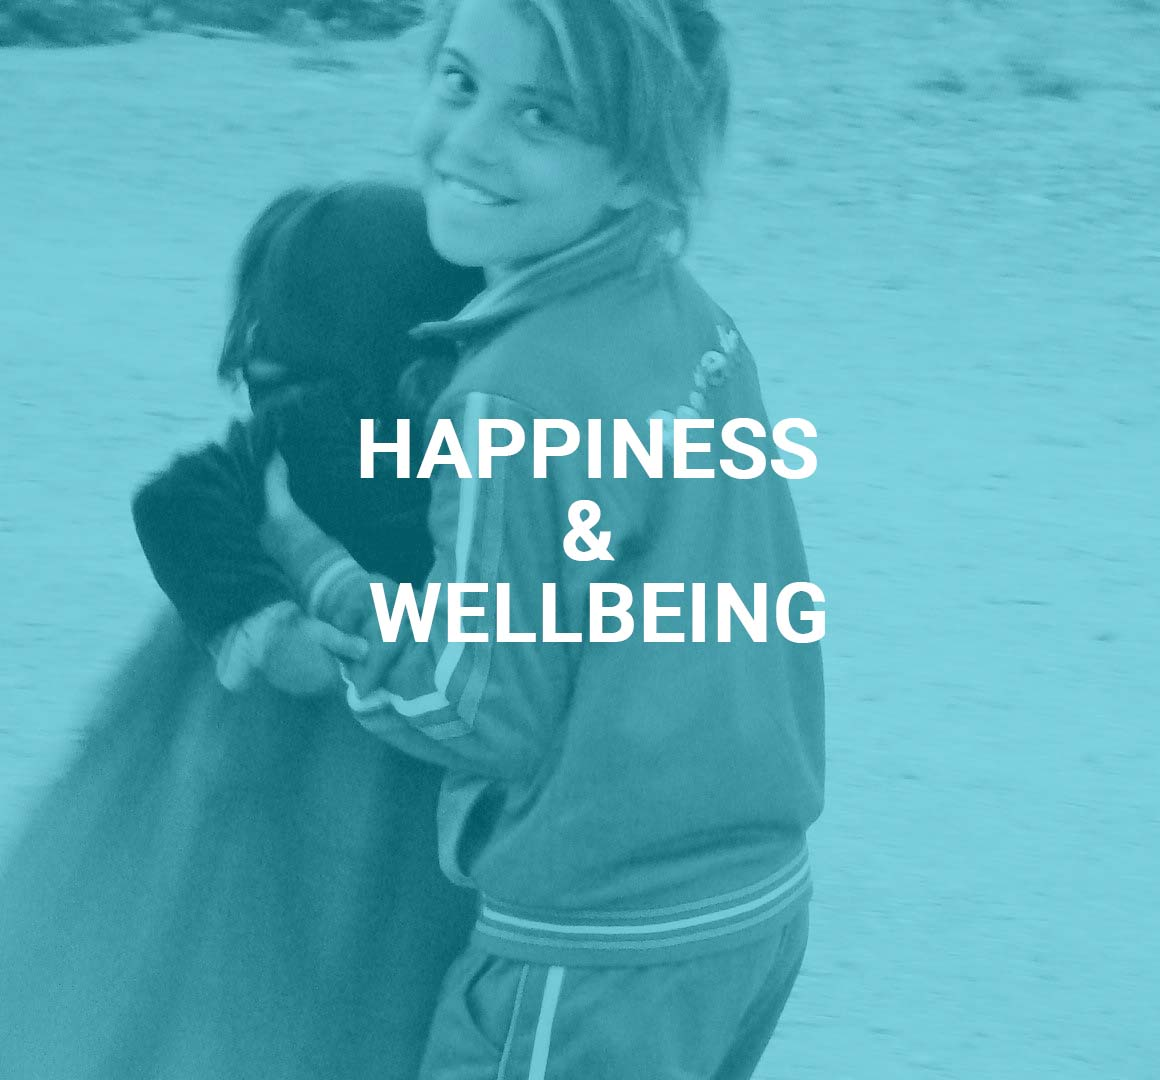 Happiness & Wellbeing